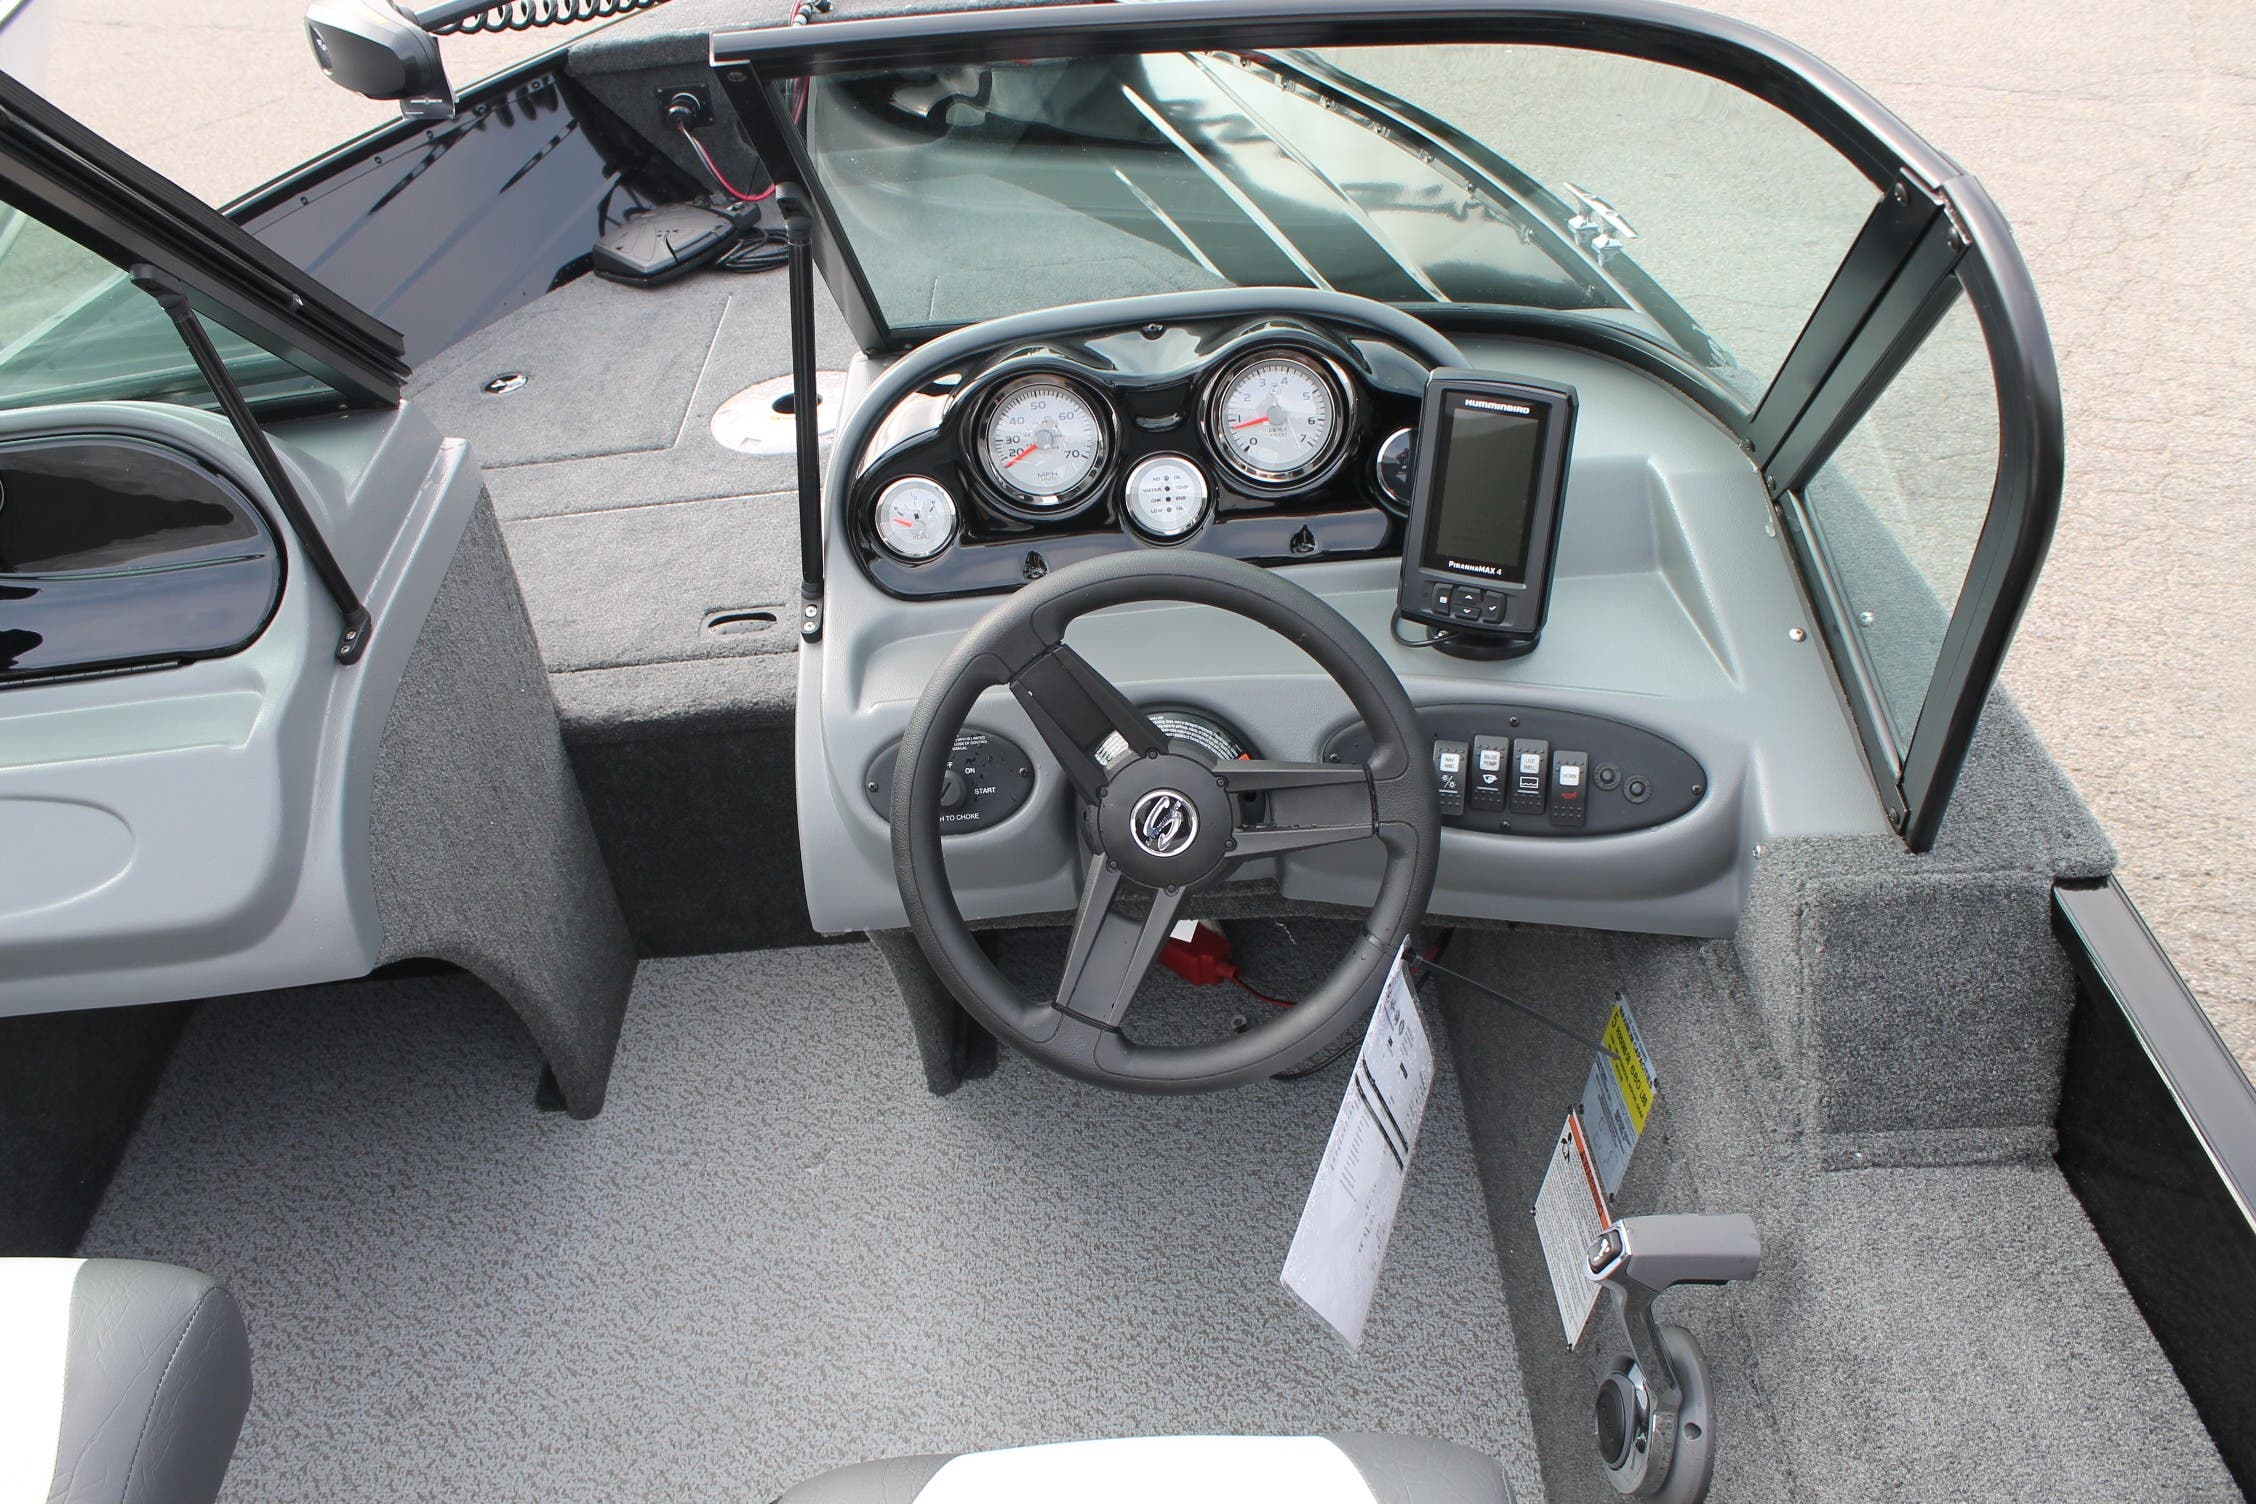 2021 Smoker Craft boat for sale, model of the boat is 162 Pro Angler & Image # 8 of 17